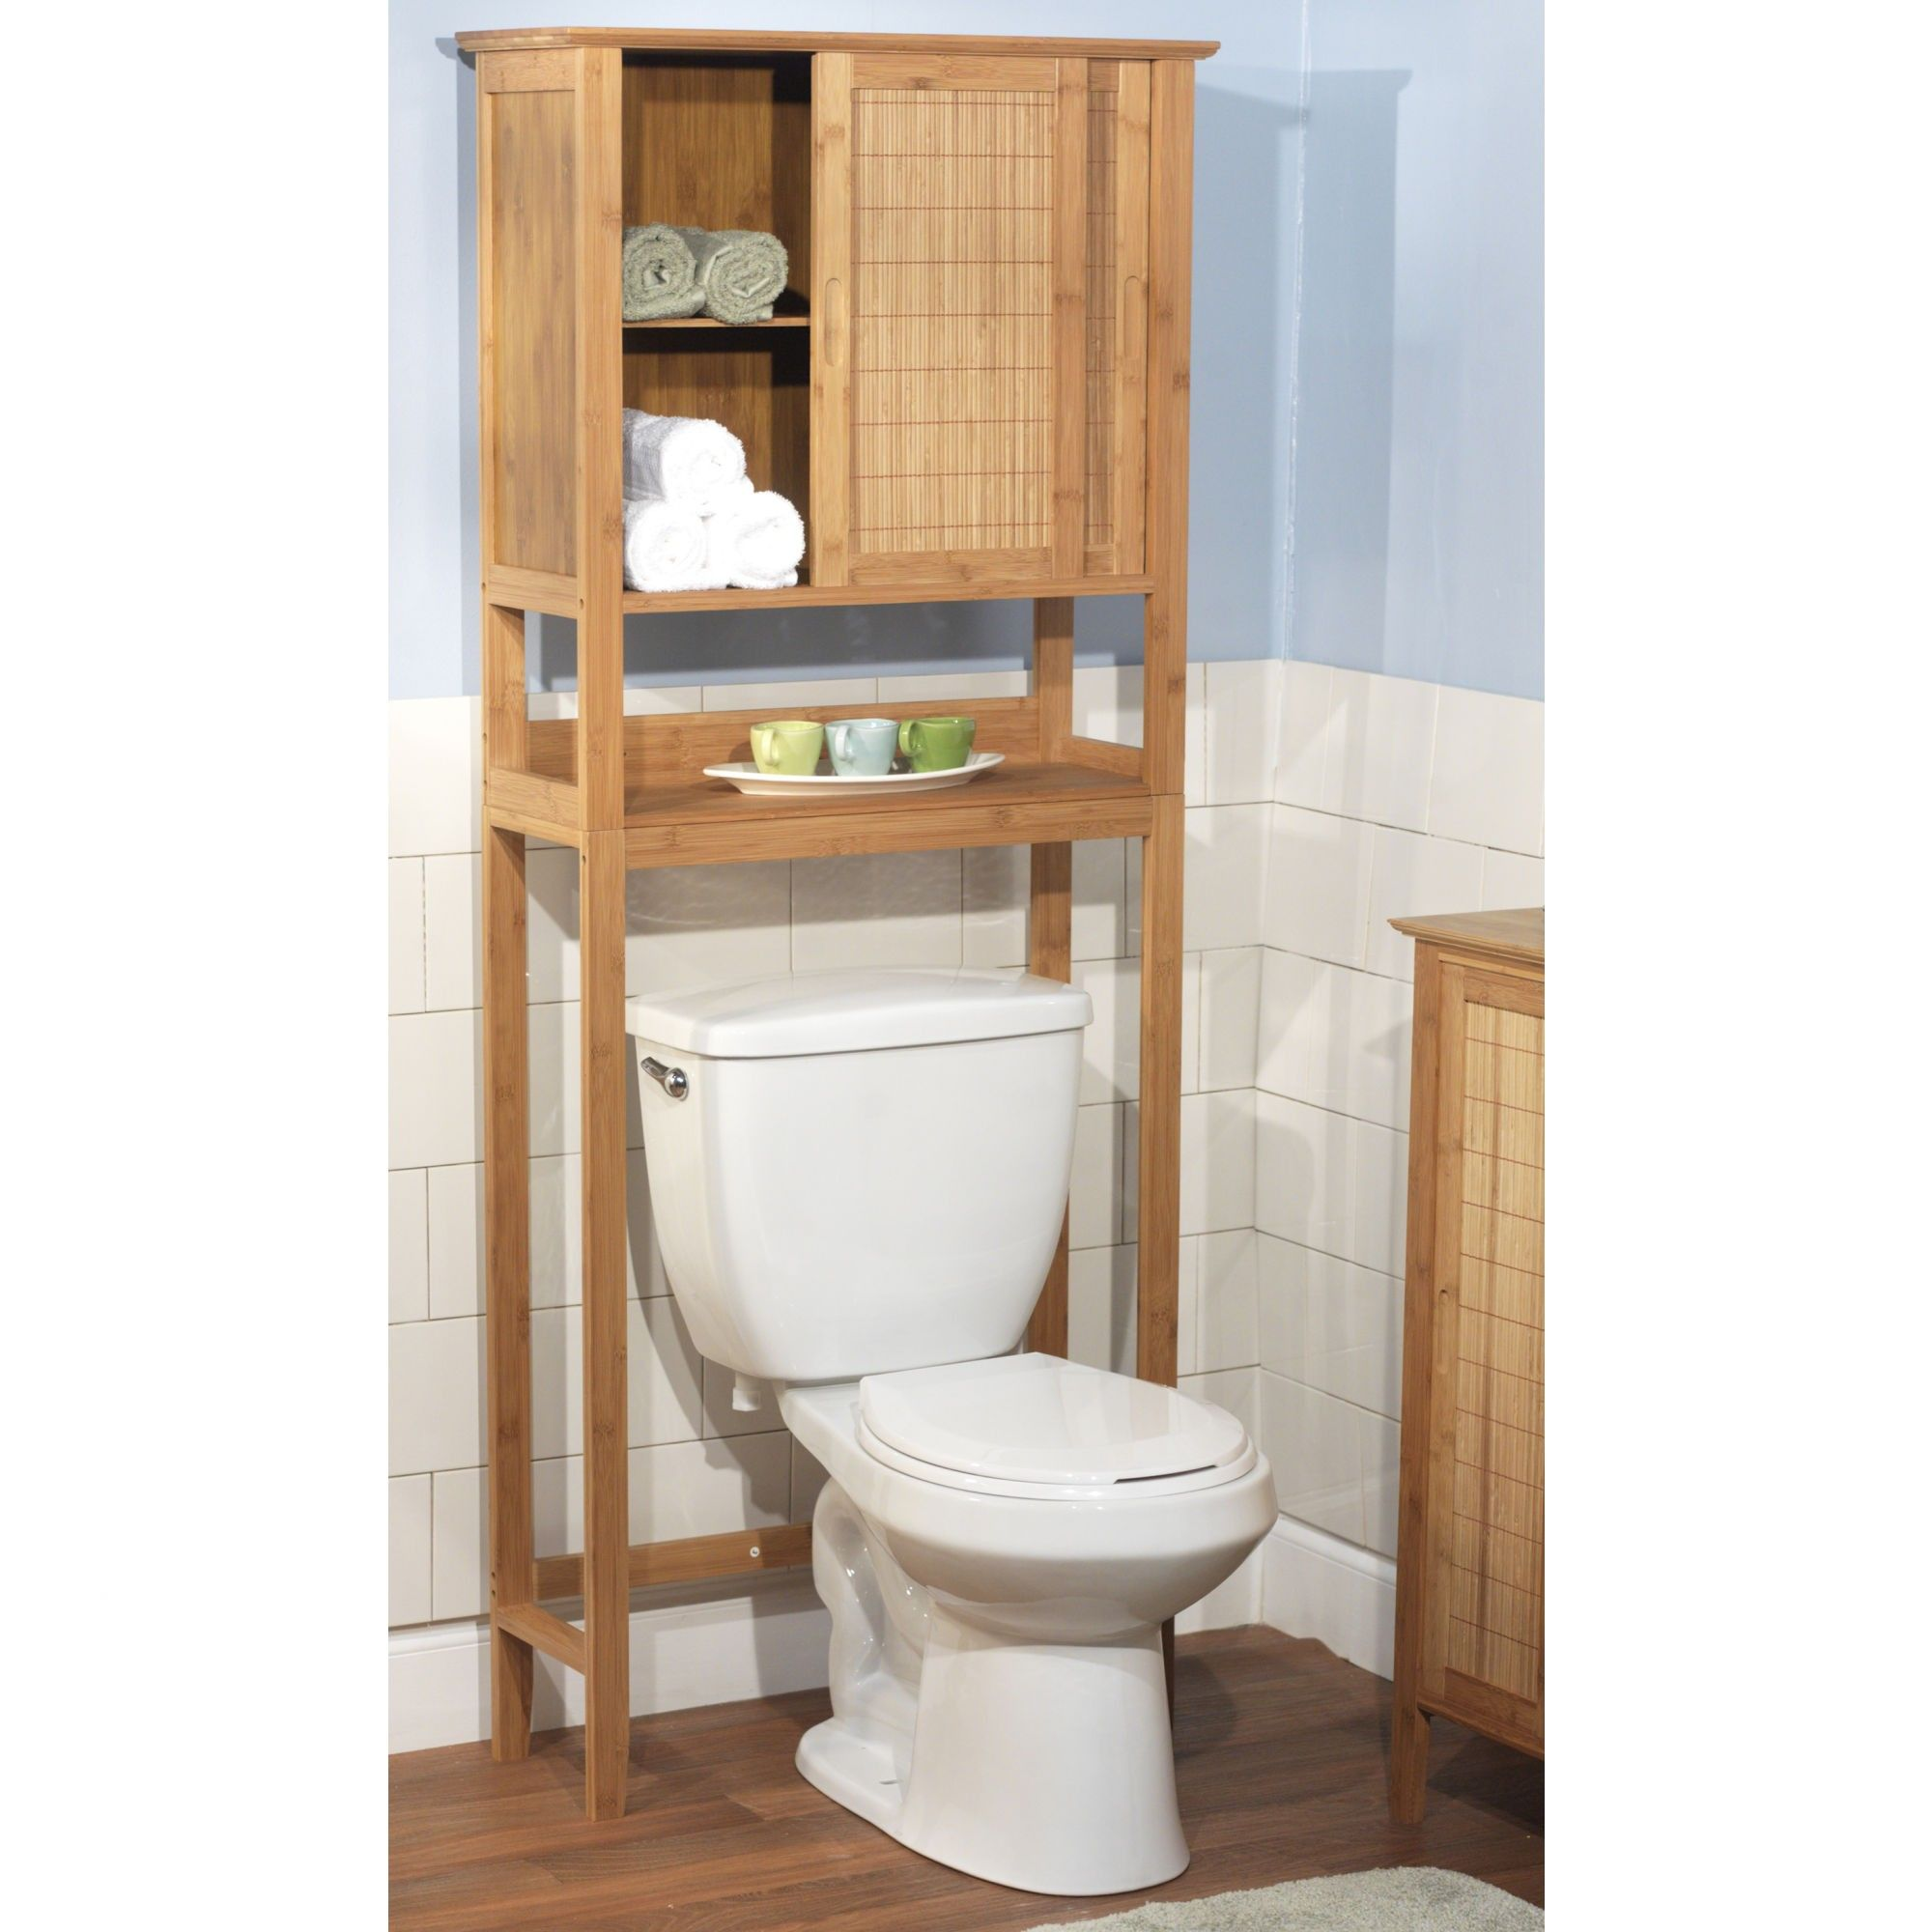 expose the wall of and shelf in lost etagere rack bathrom maximizes toilet metal saver brick monaco contemporary over your modern for bathroom spacesaver space combine design bath stand small